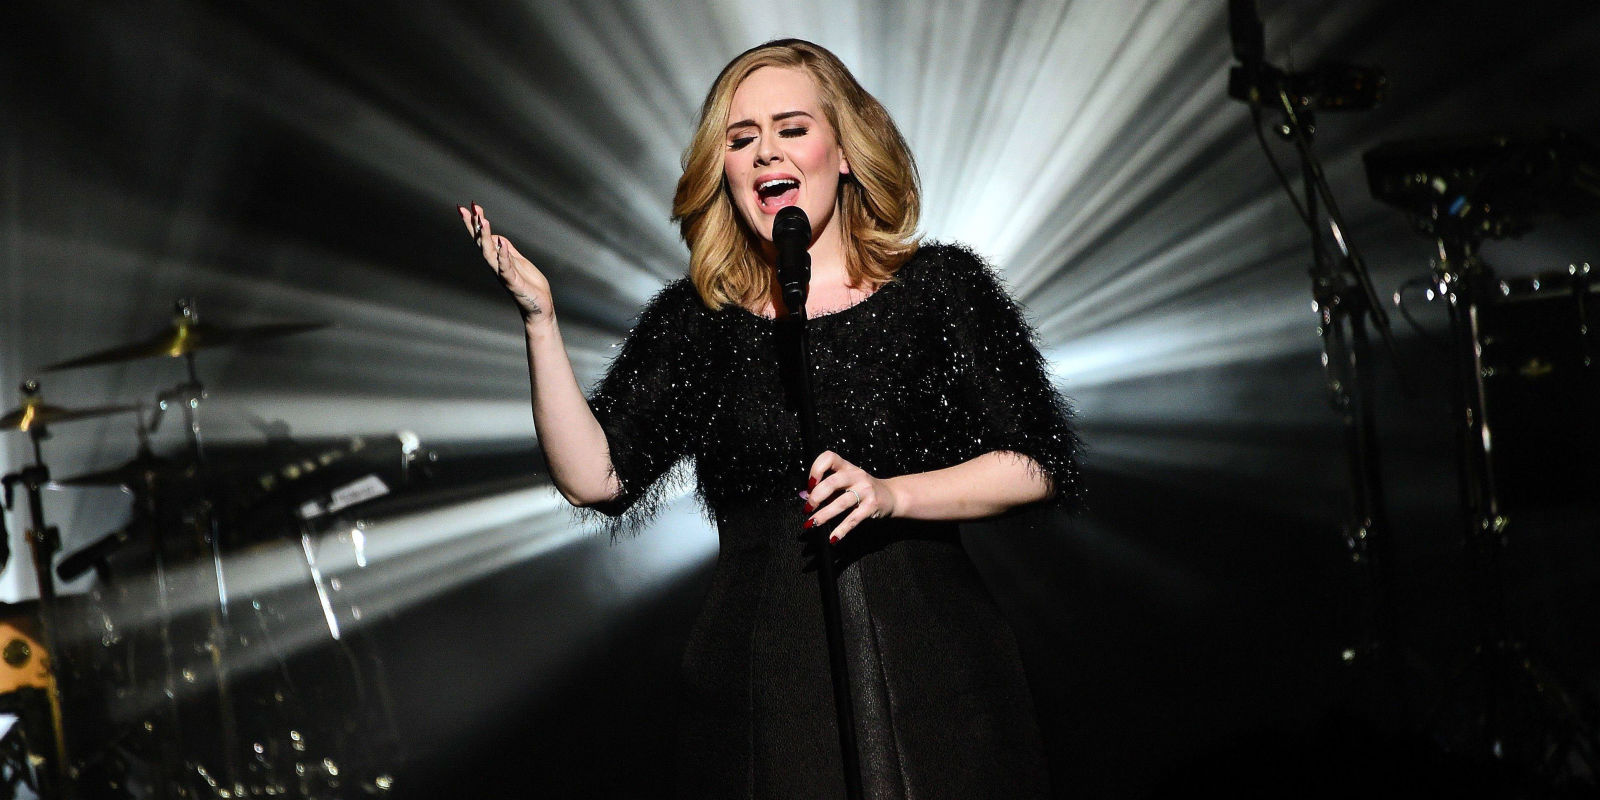 Adele Live 2016 Tickets Are Already Selling For Over 163